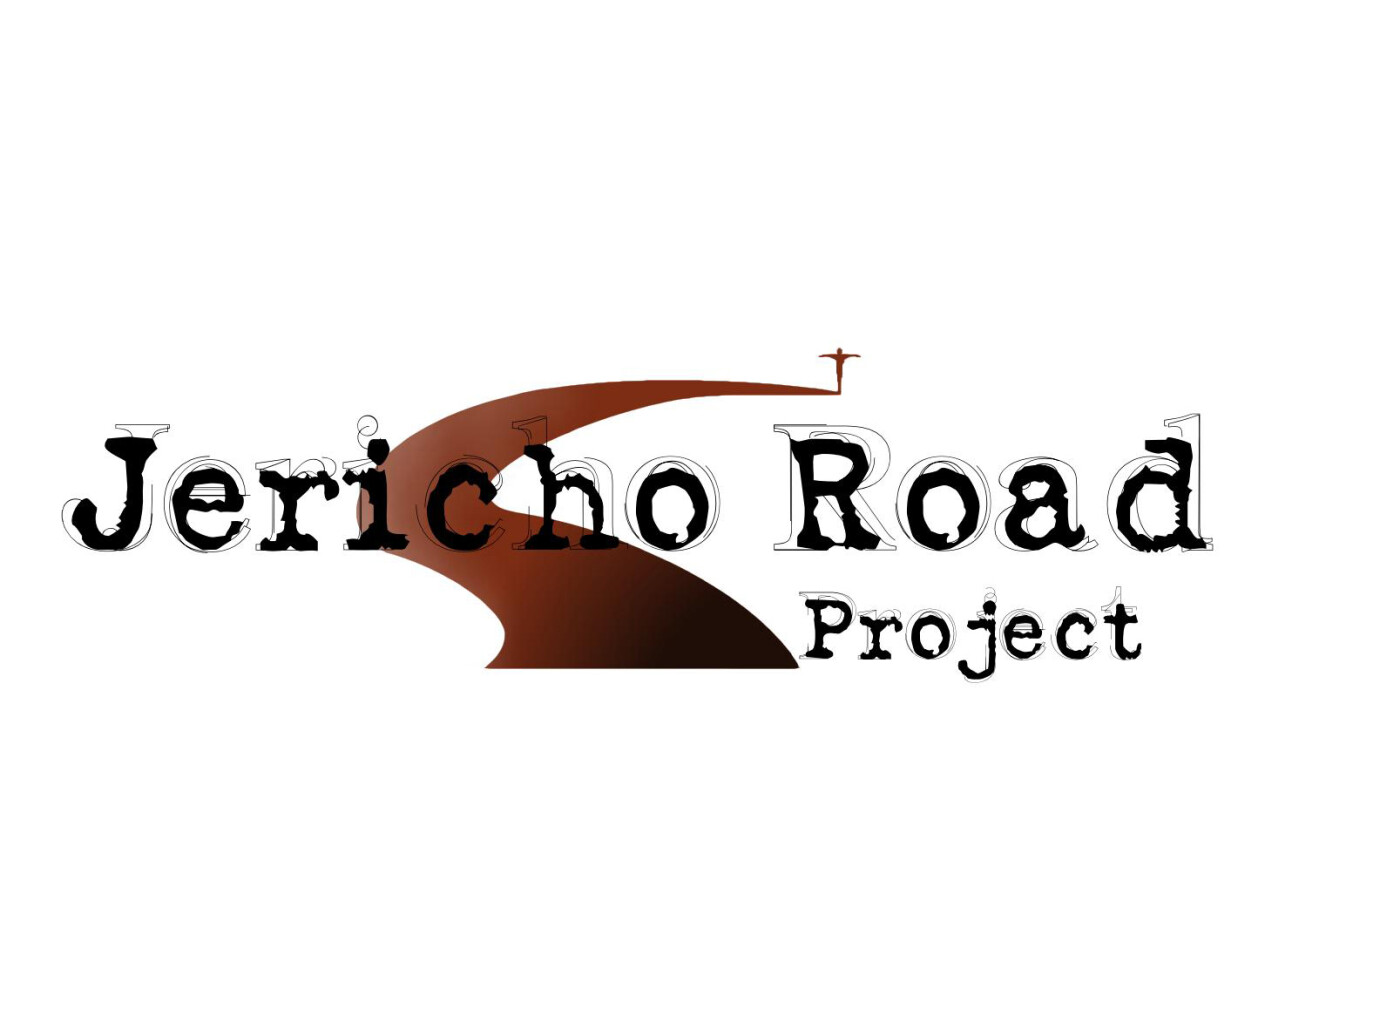 Jericho Road Project 2021